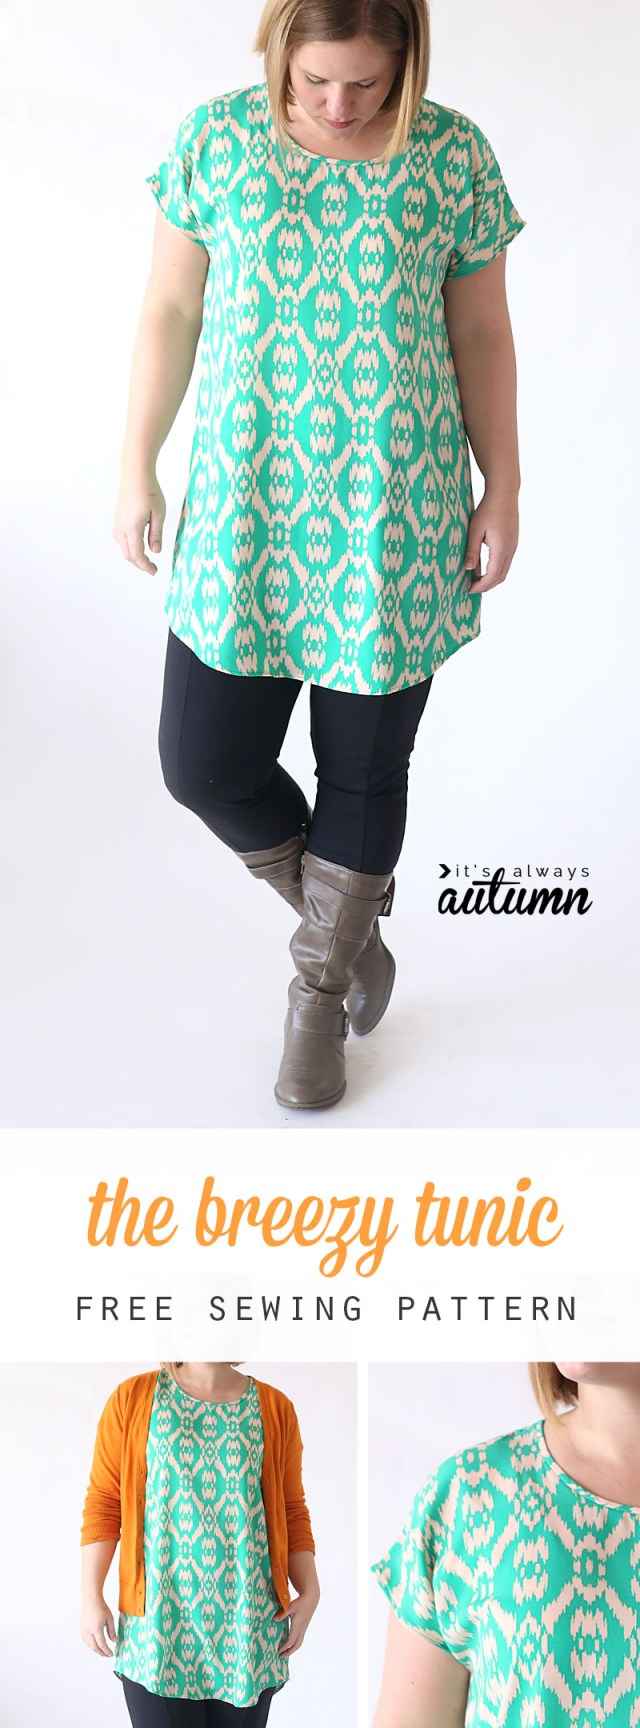 Easy Blouse Sewing Pattern The Breezy Tee Tunic Free Sewing Pattern Its Always Autumn